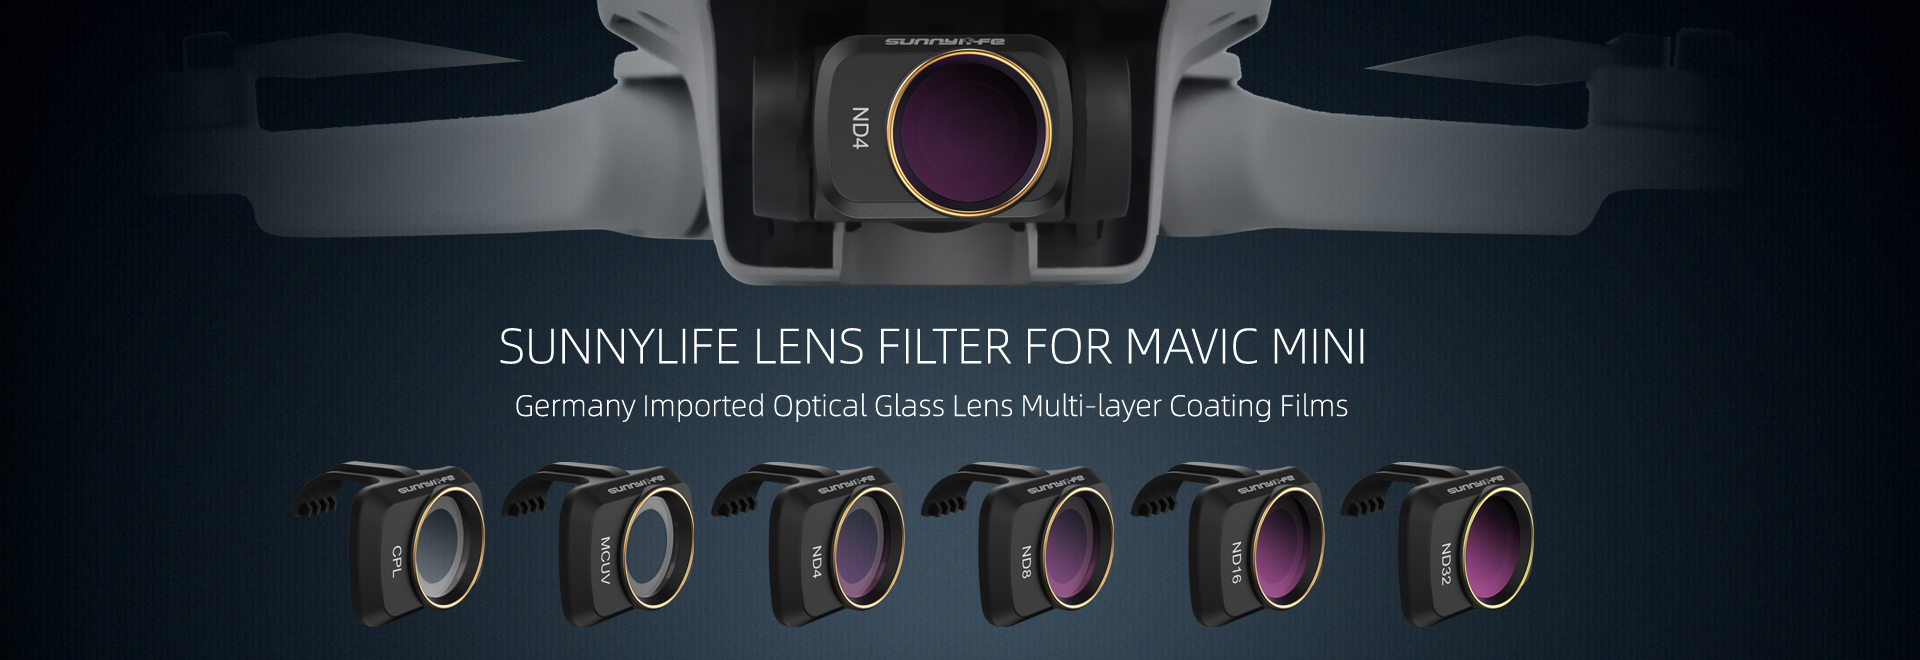 Lens Filter for Mavic Mini